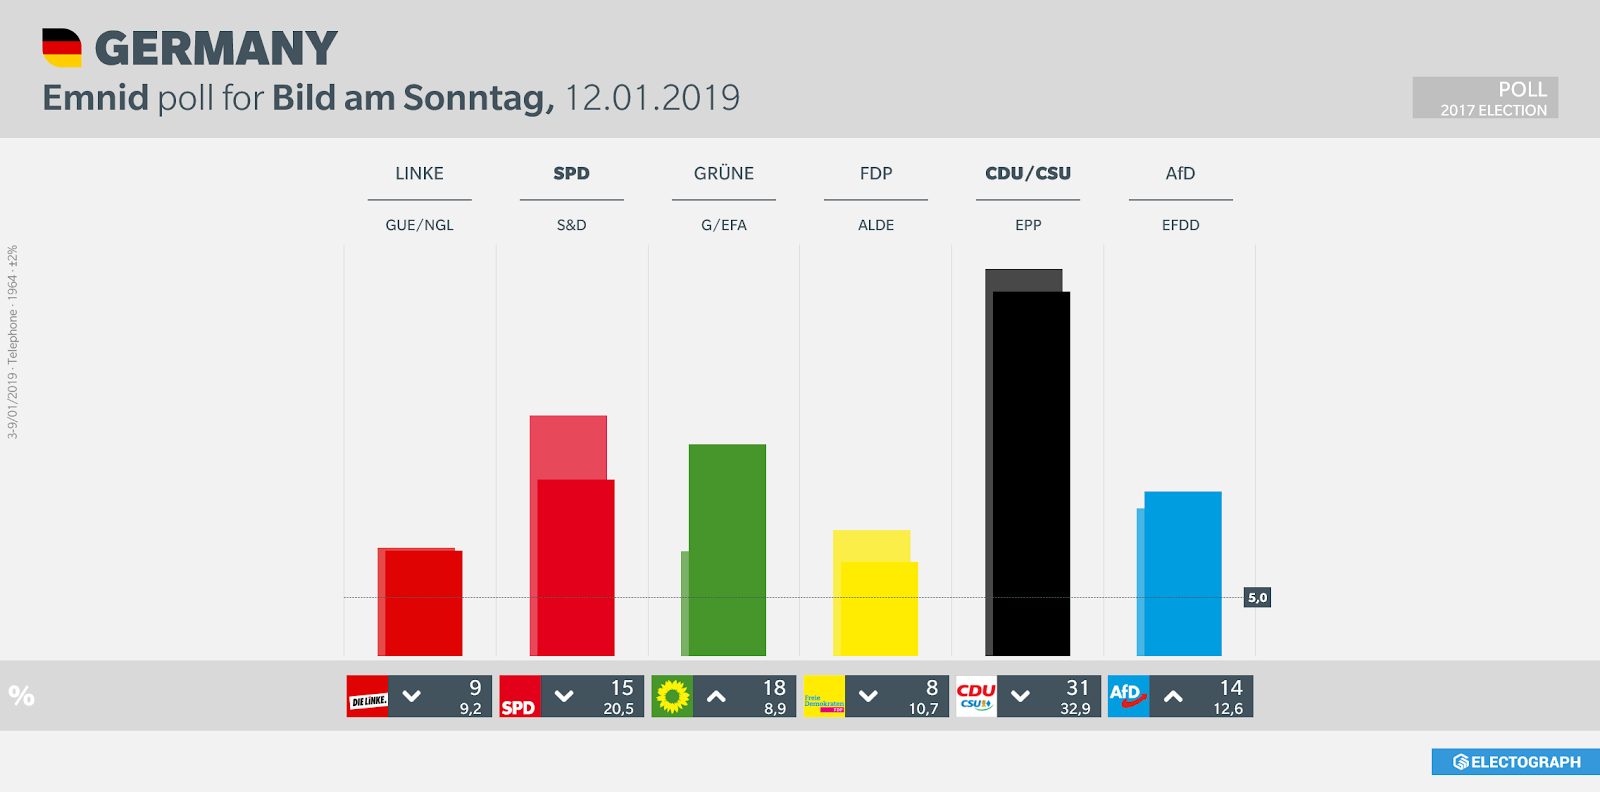 GERMANY: Emnid poll chart for Bild am Sonntag, 12 January 2019